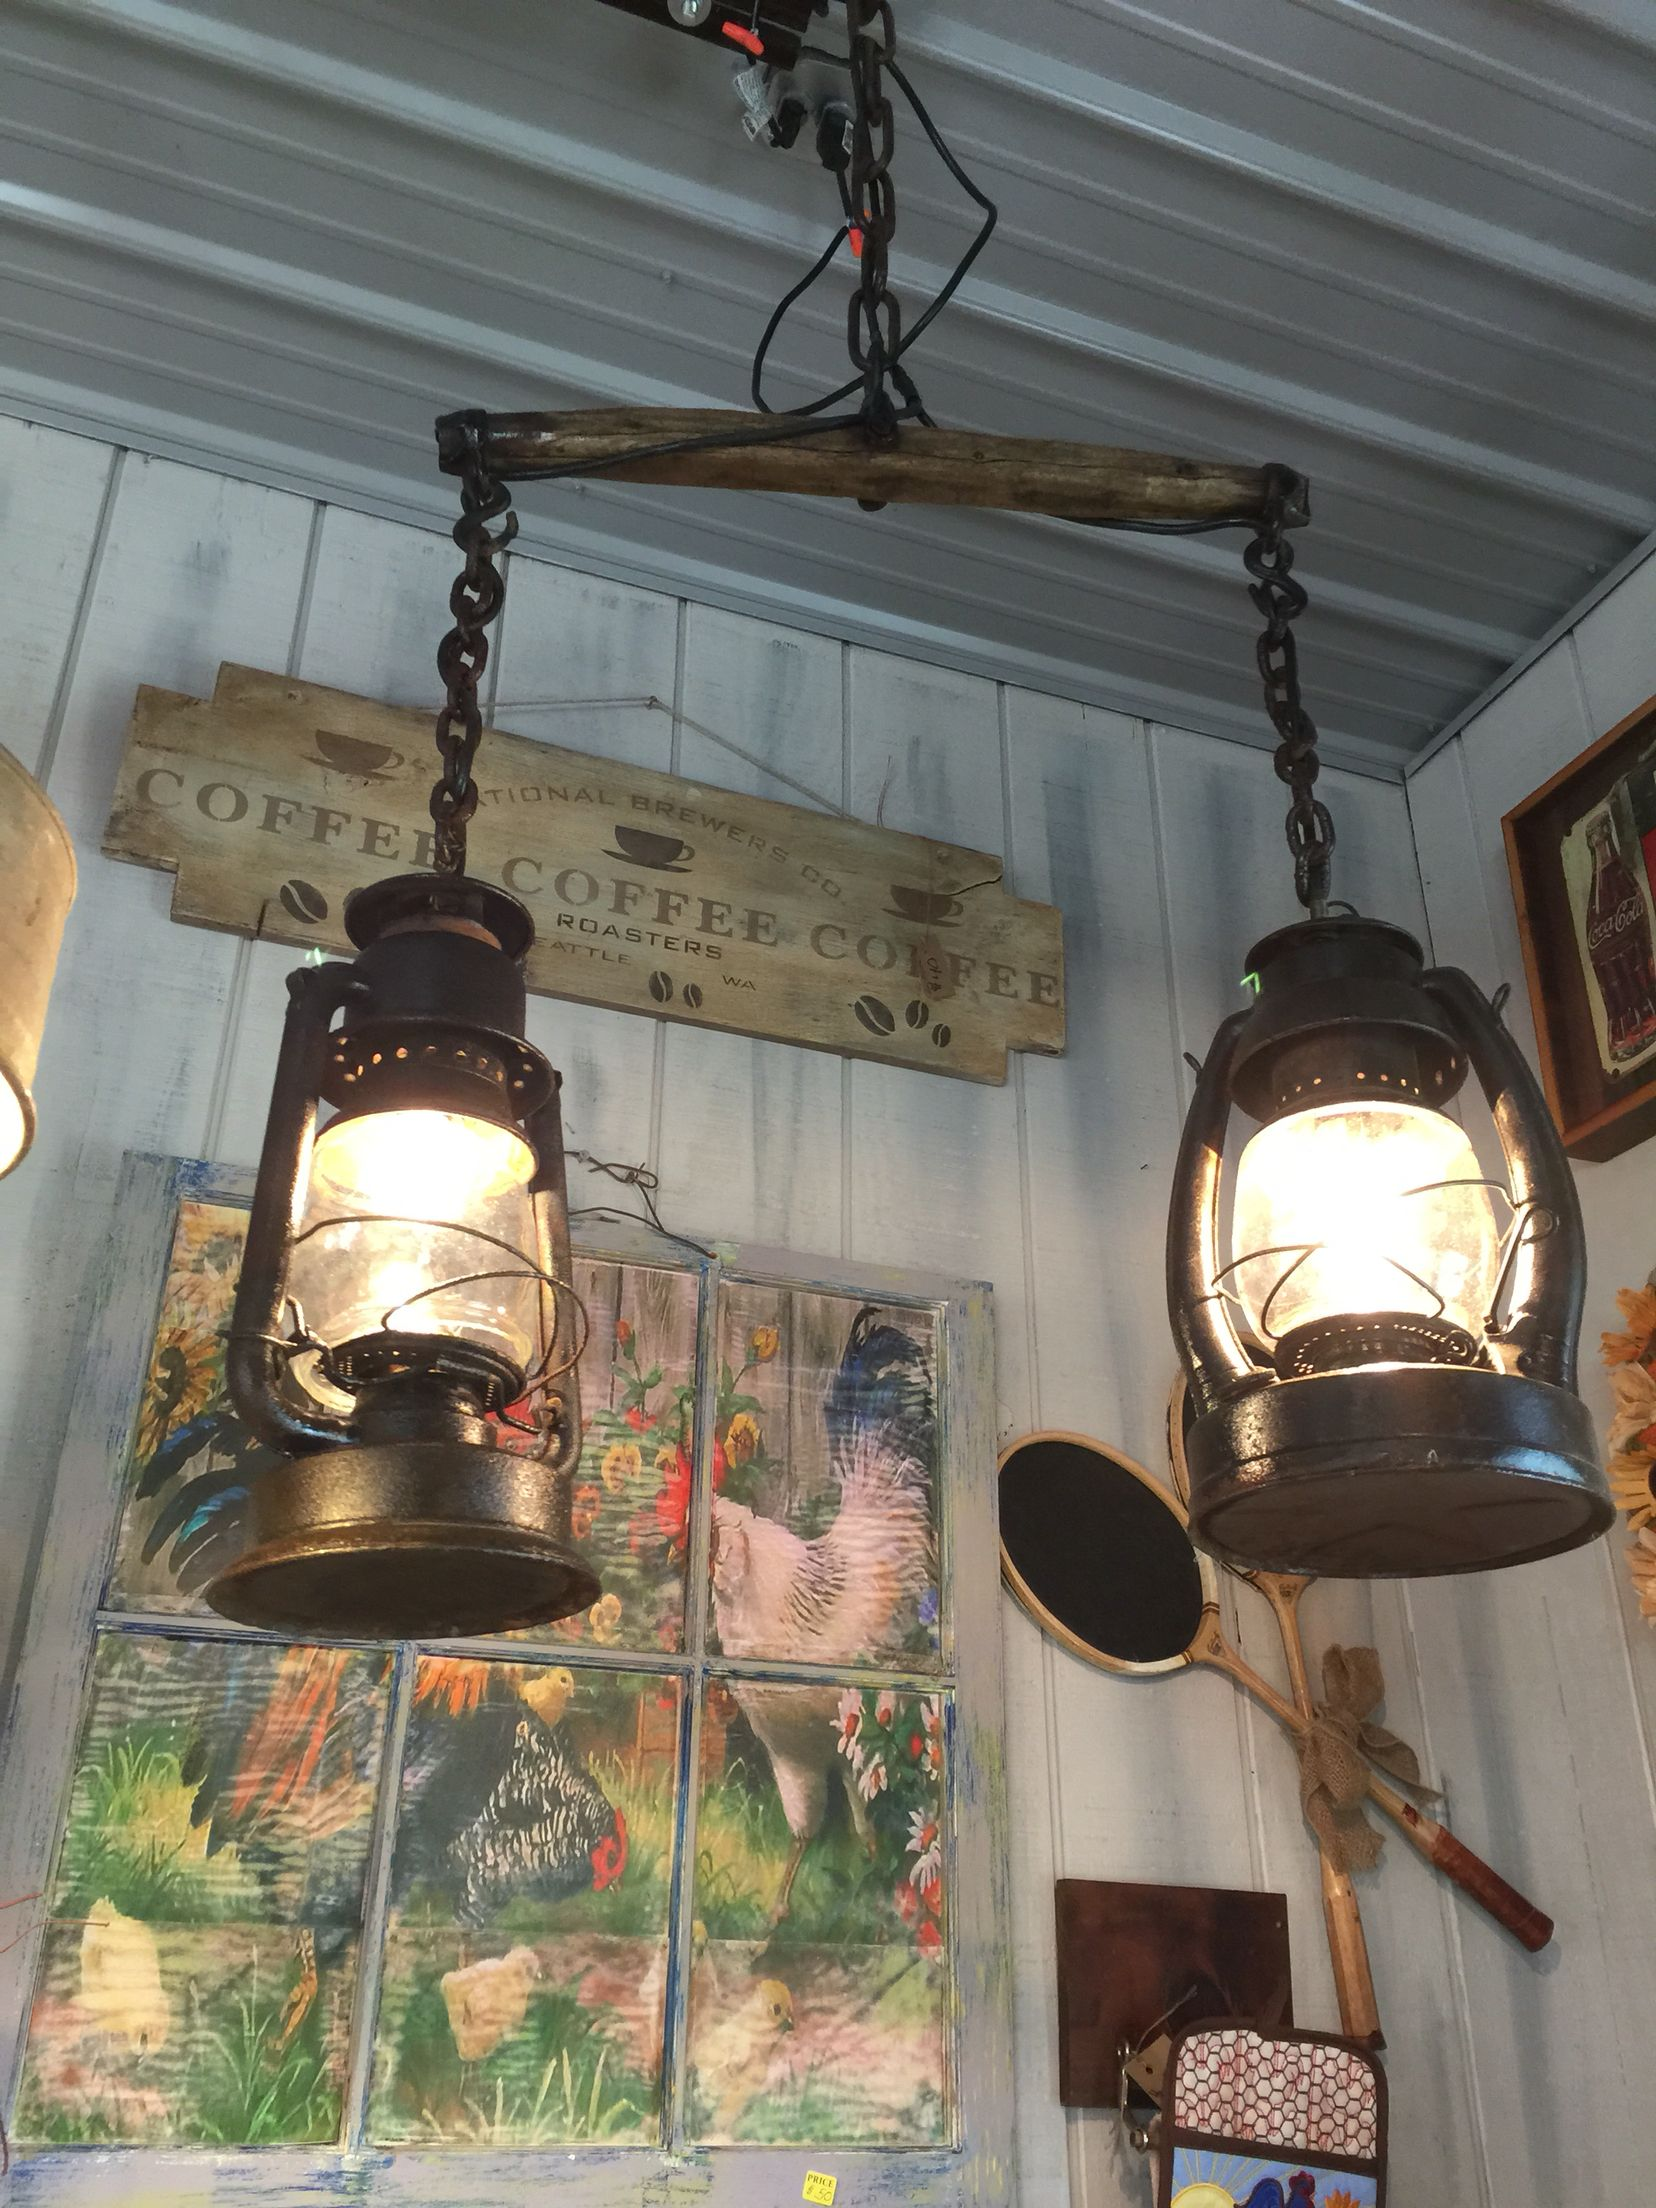 Hanging light made from old lanterns and a horse yoke rustic hanging light made from old lanterns and a horse yoke arubaitofo Images